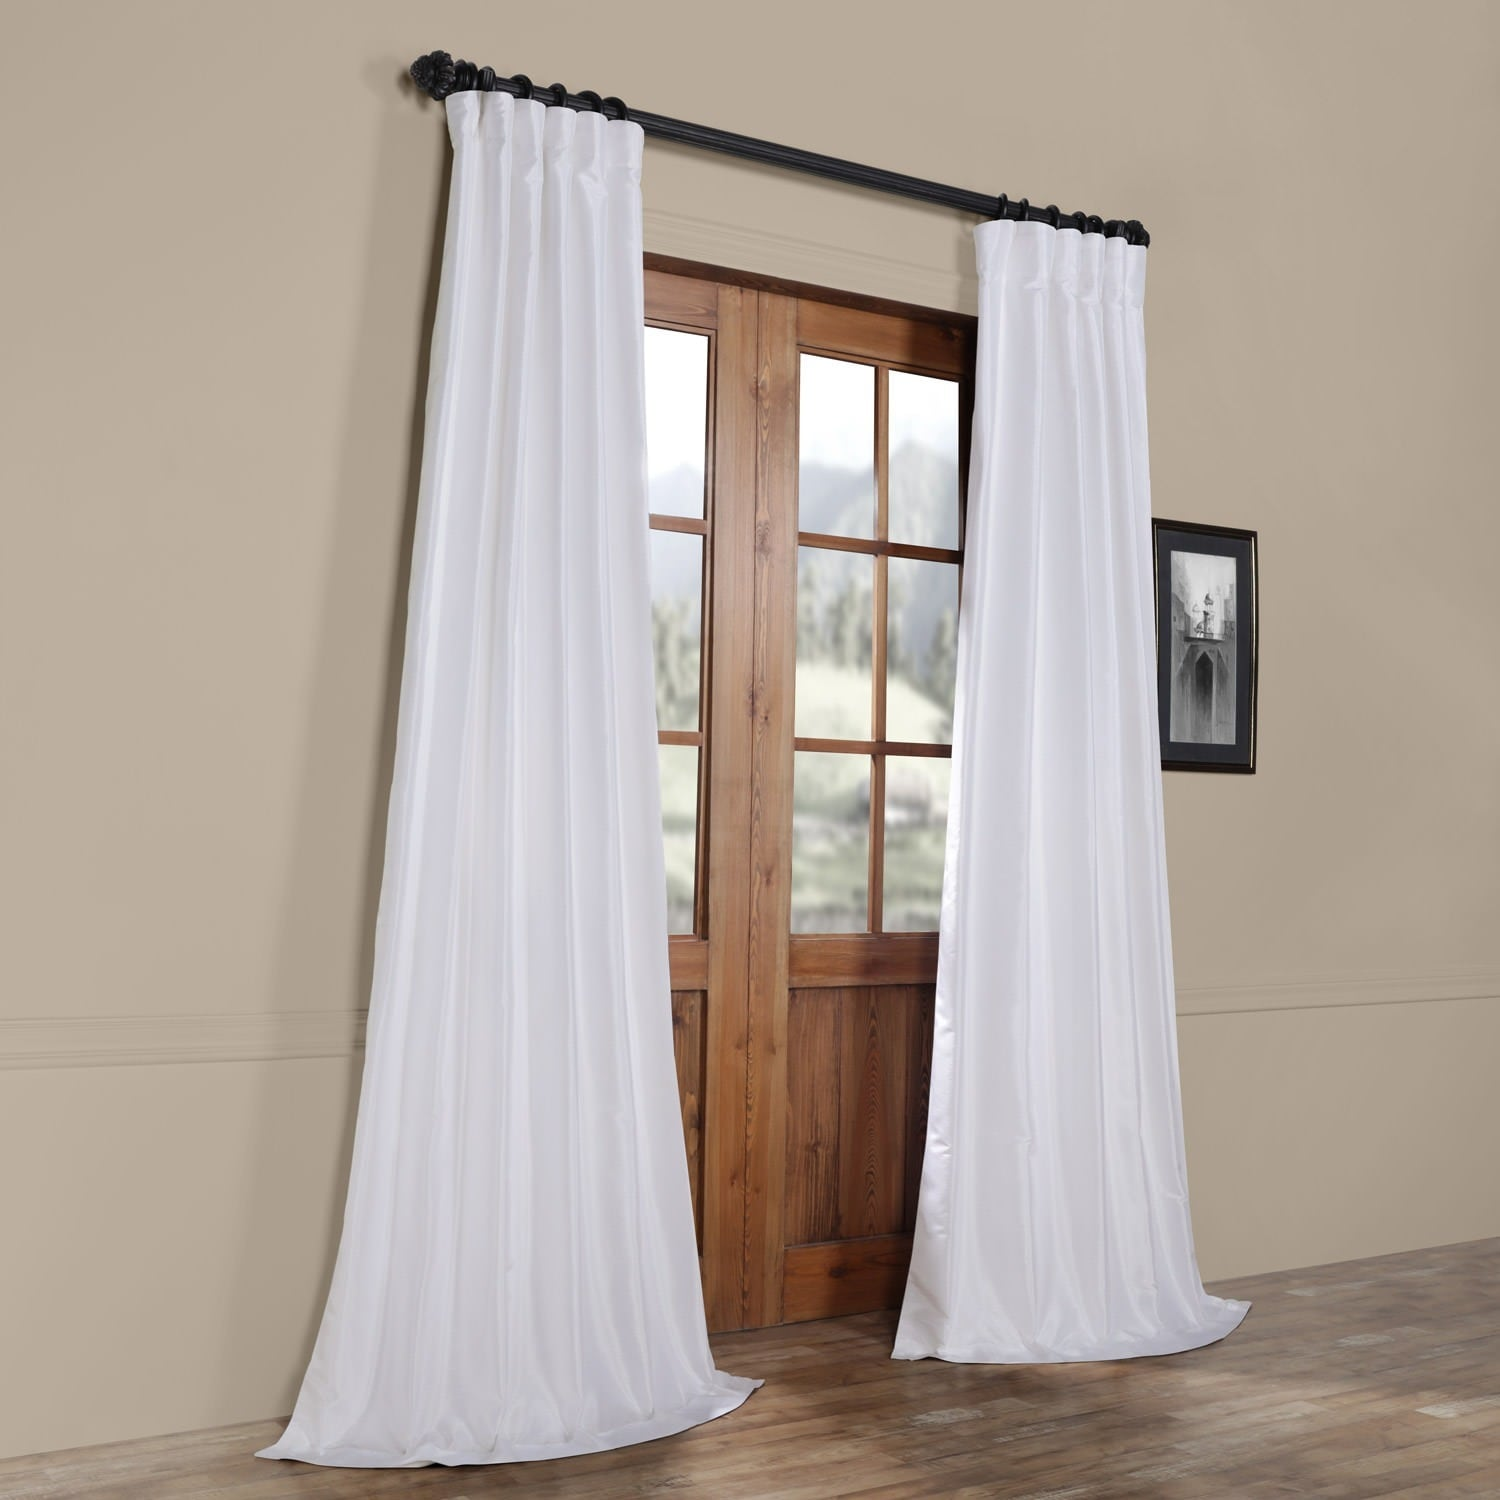 Ice White Vintage Faux Textured Dupioni Silk 108l Curtain Panel On Sale Overstock 20602770